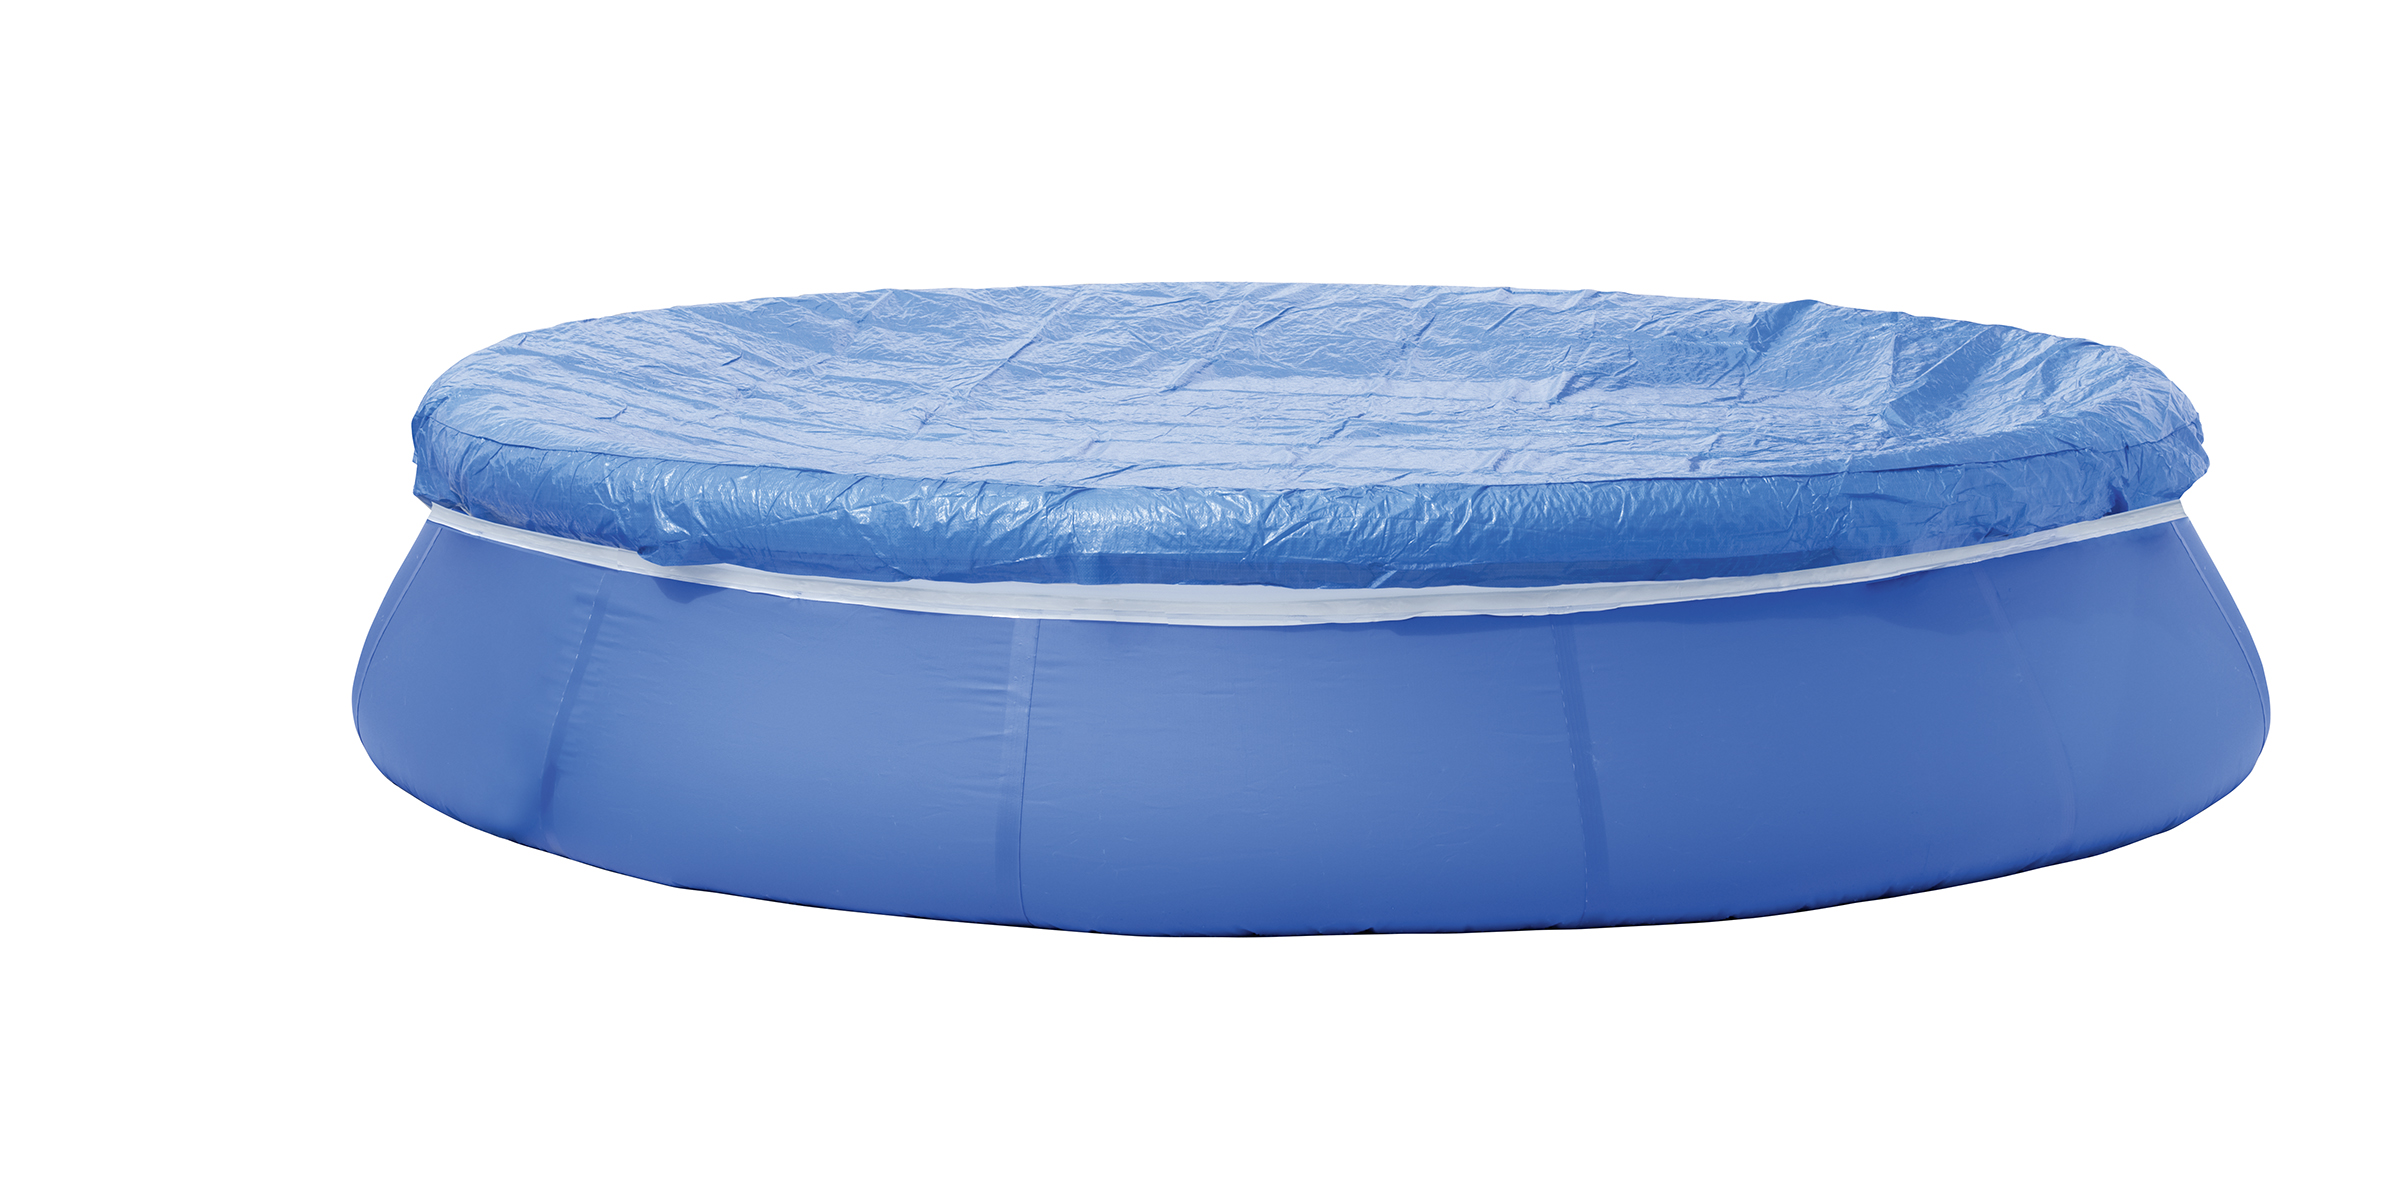 Bestway Pool Abdeckung Oval Poolabdeckung Abdeckplane Wehncke Bestway Intex Quick Pool 366 Cm